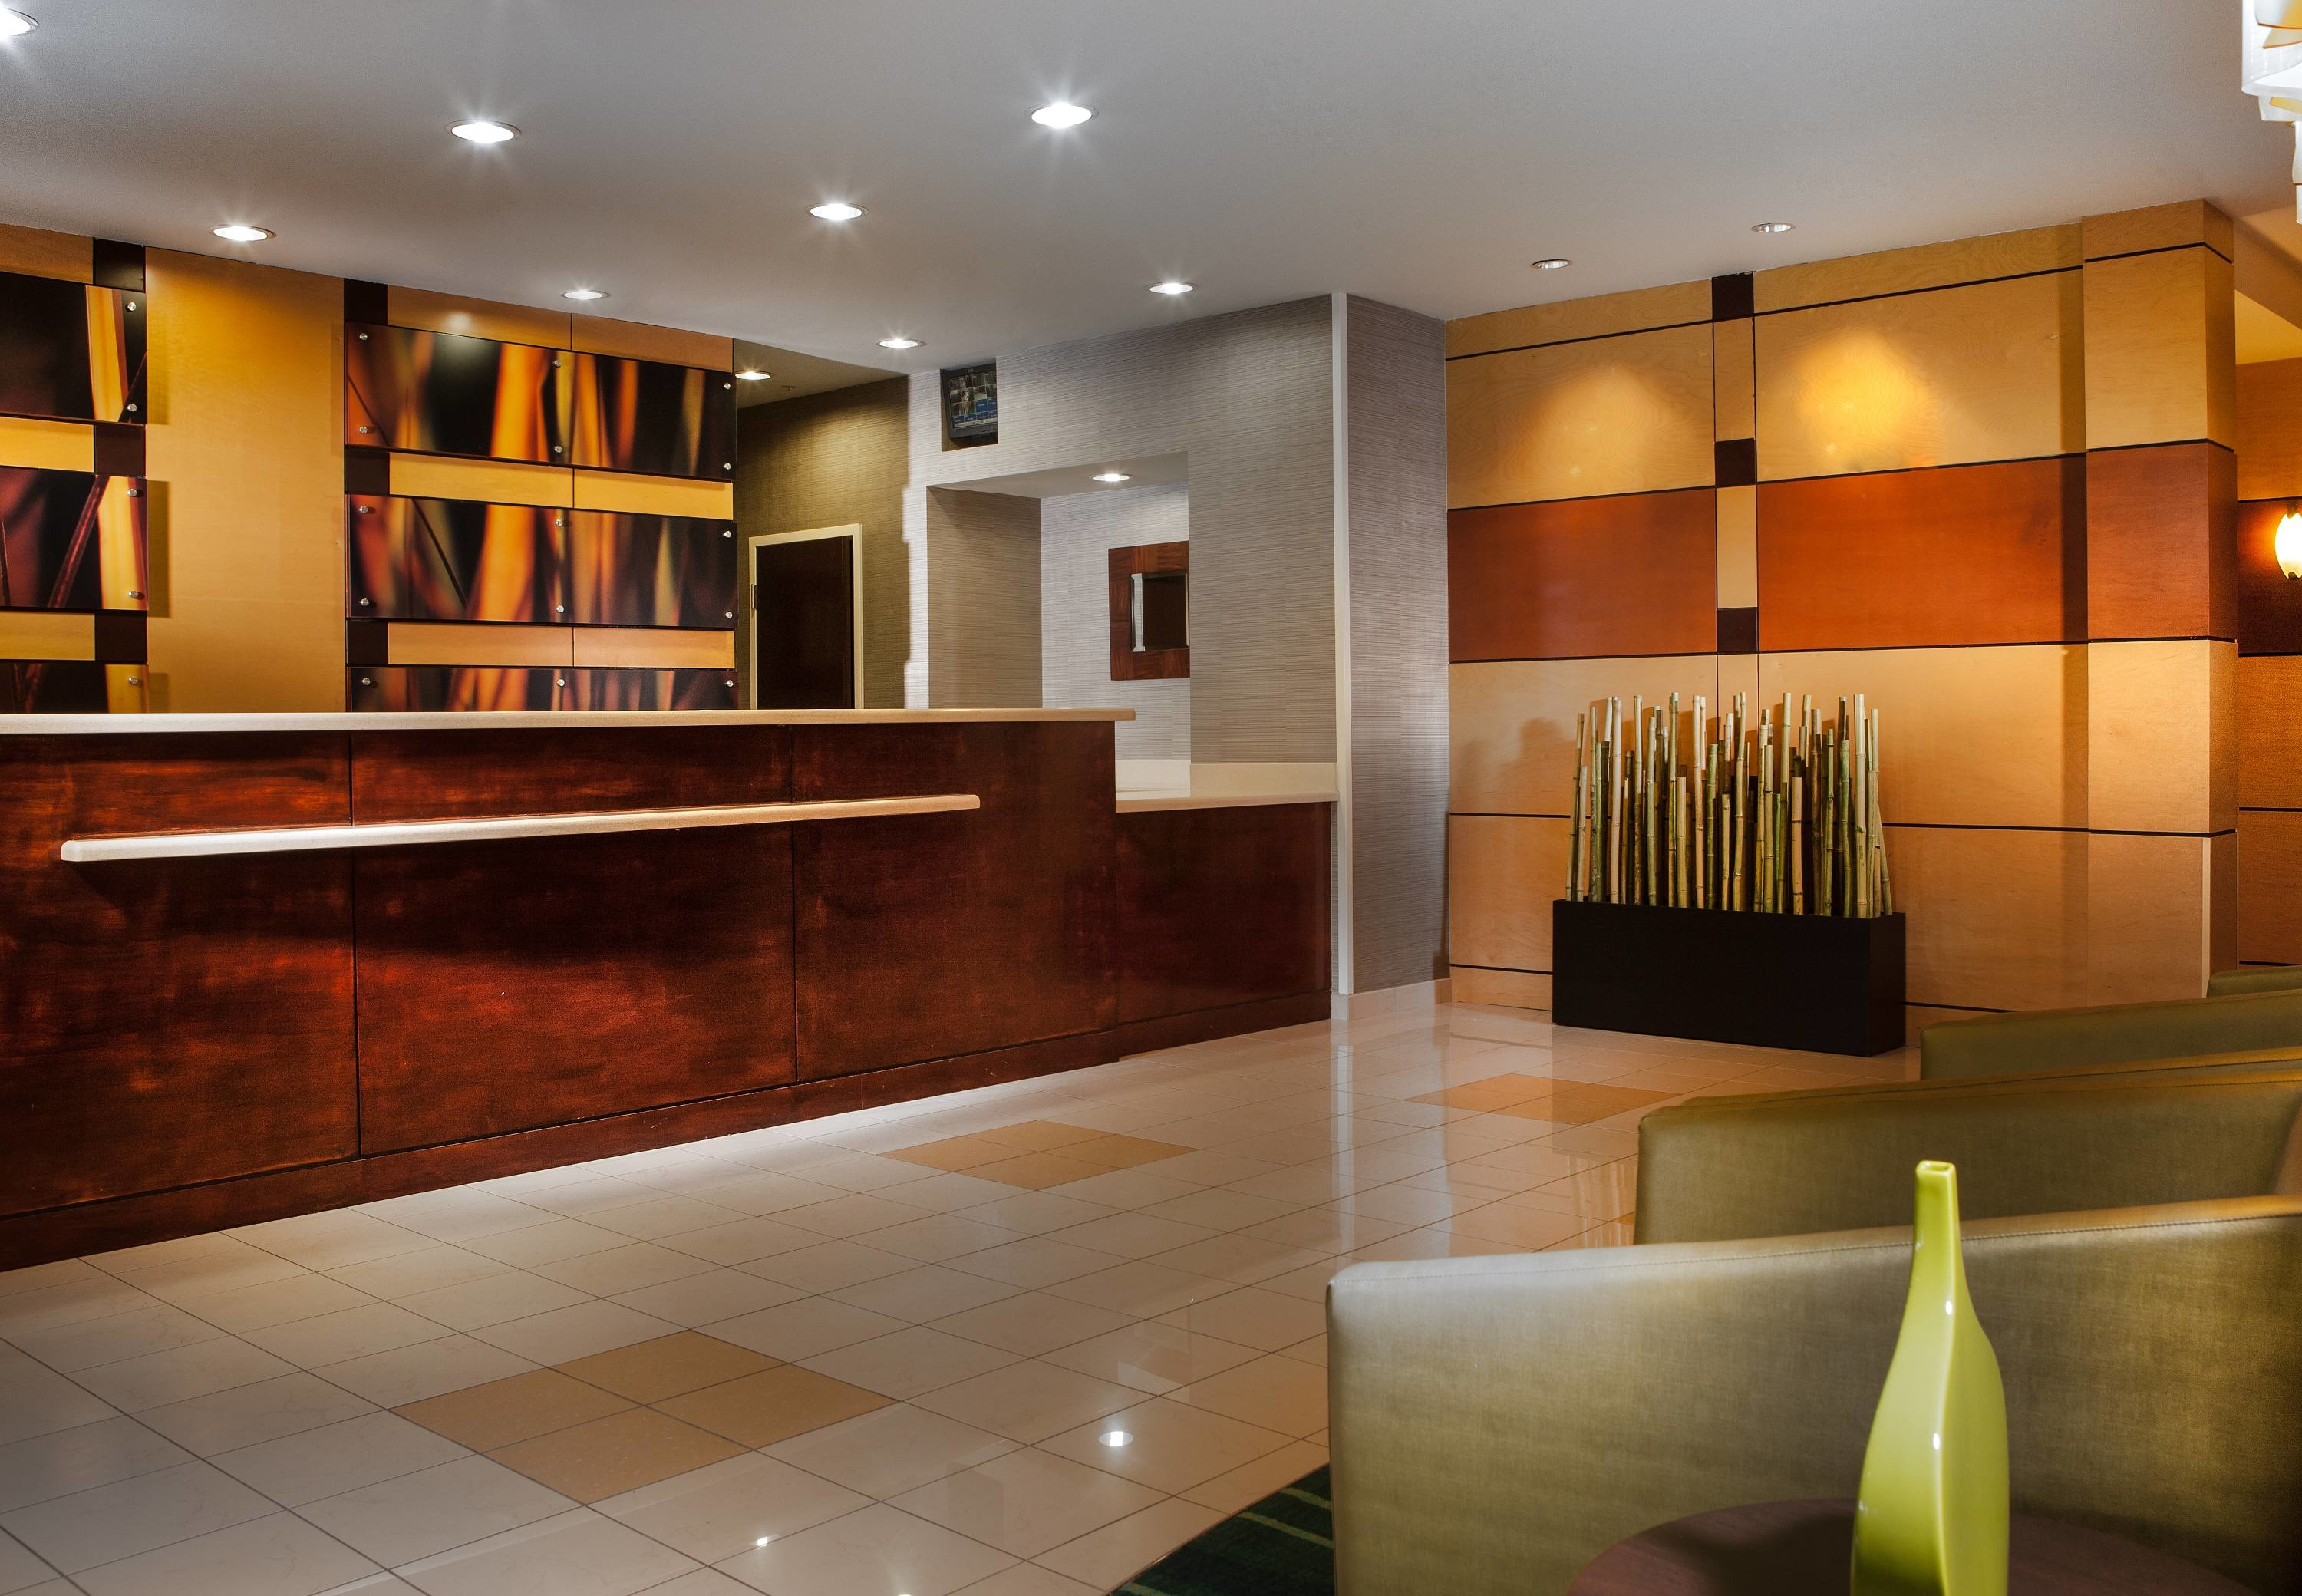 SpringHill Suites by Marriott Dallas DFW Airport North/Grapevine image 4